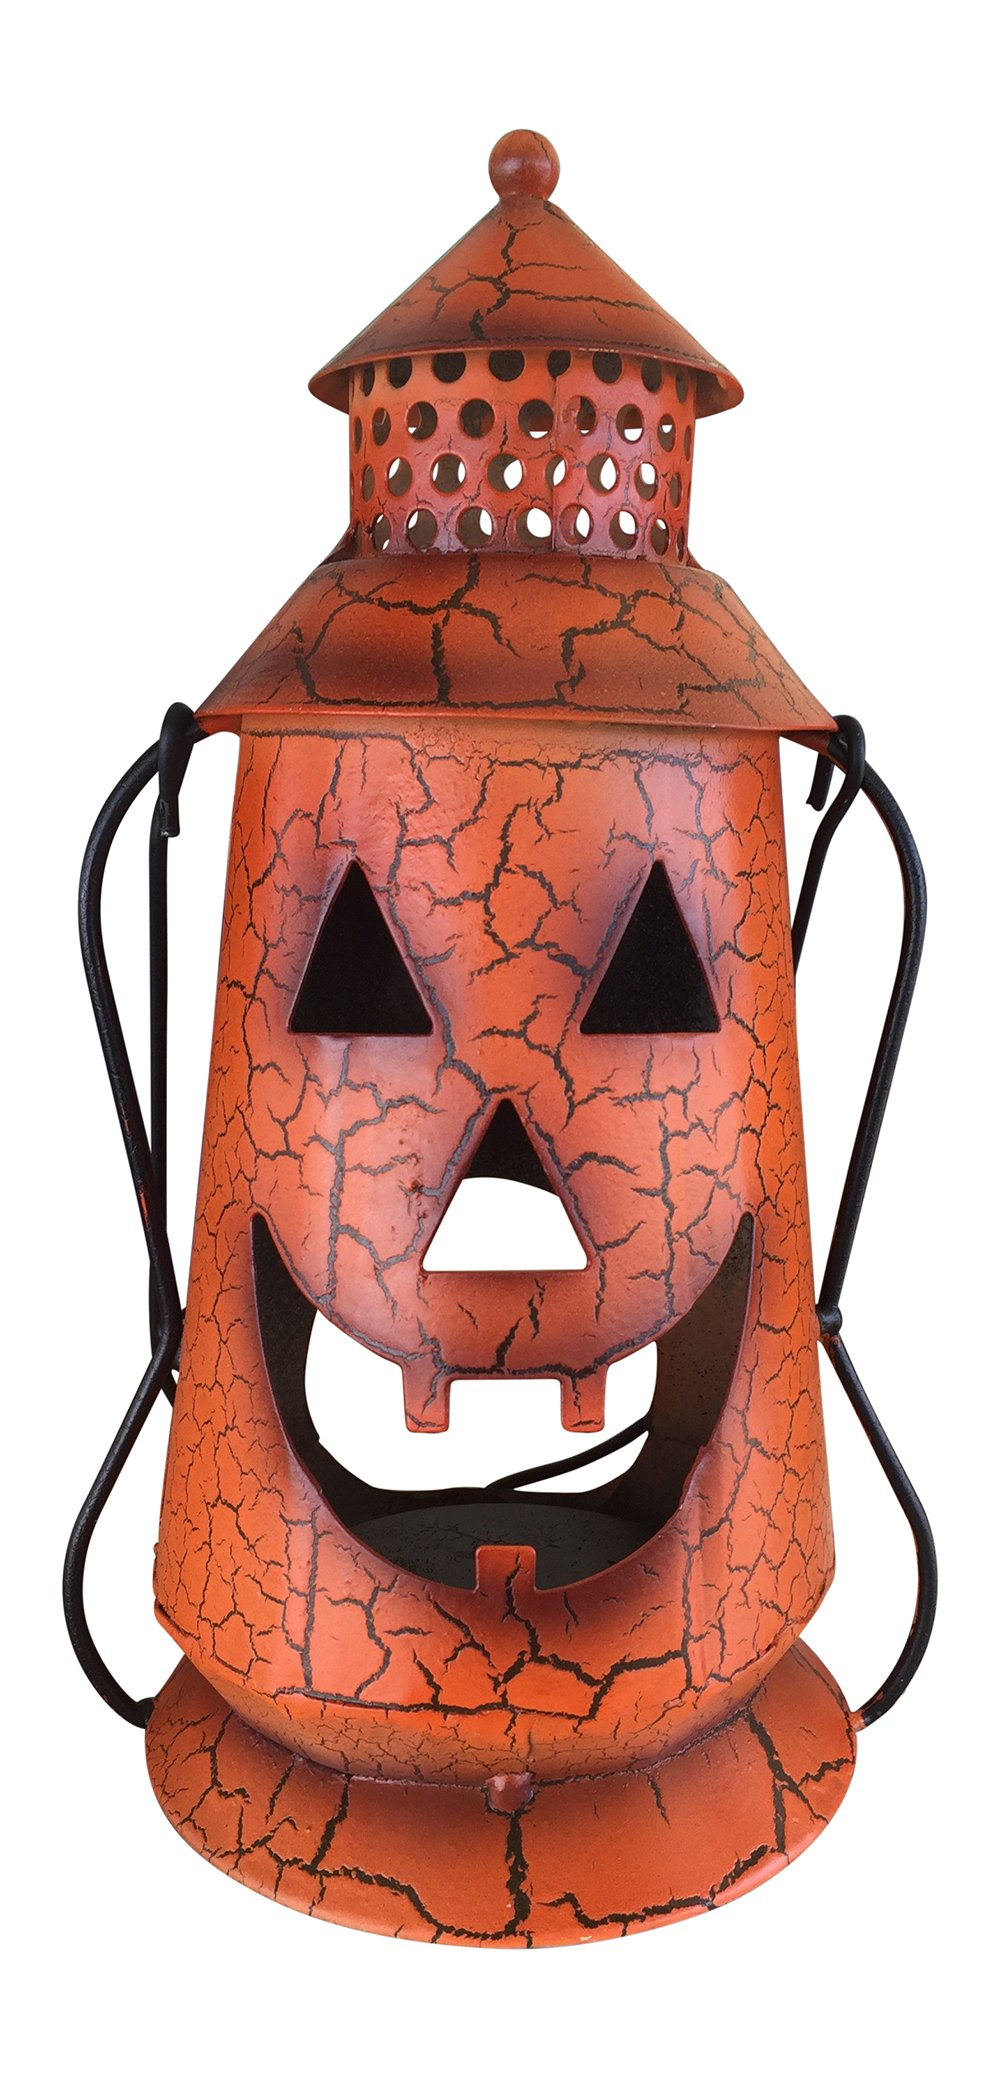 Halloween Pumpkin Rustic Lantern with Handle, - Metal Jack O Lantern Fall Decoration, Standing or Hanging, Holds Pillar Candle - Indoor, Outdoor, by Clovers Garden by Clovers Garden